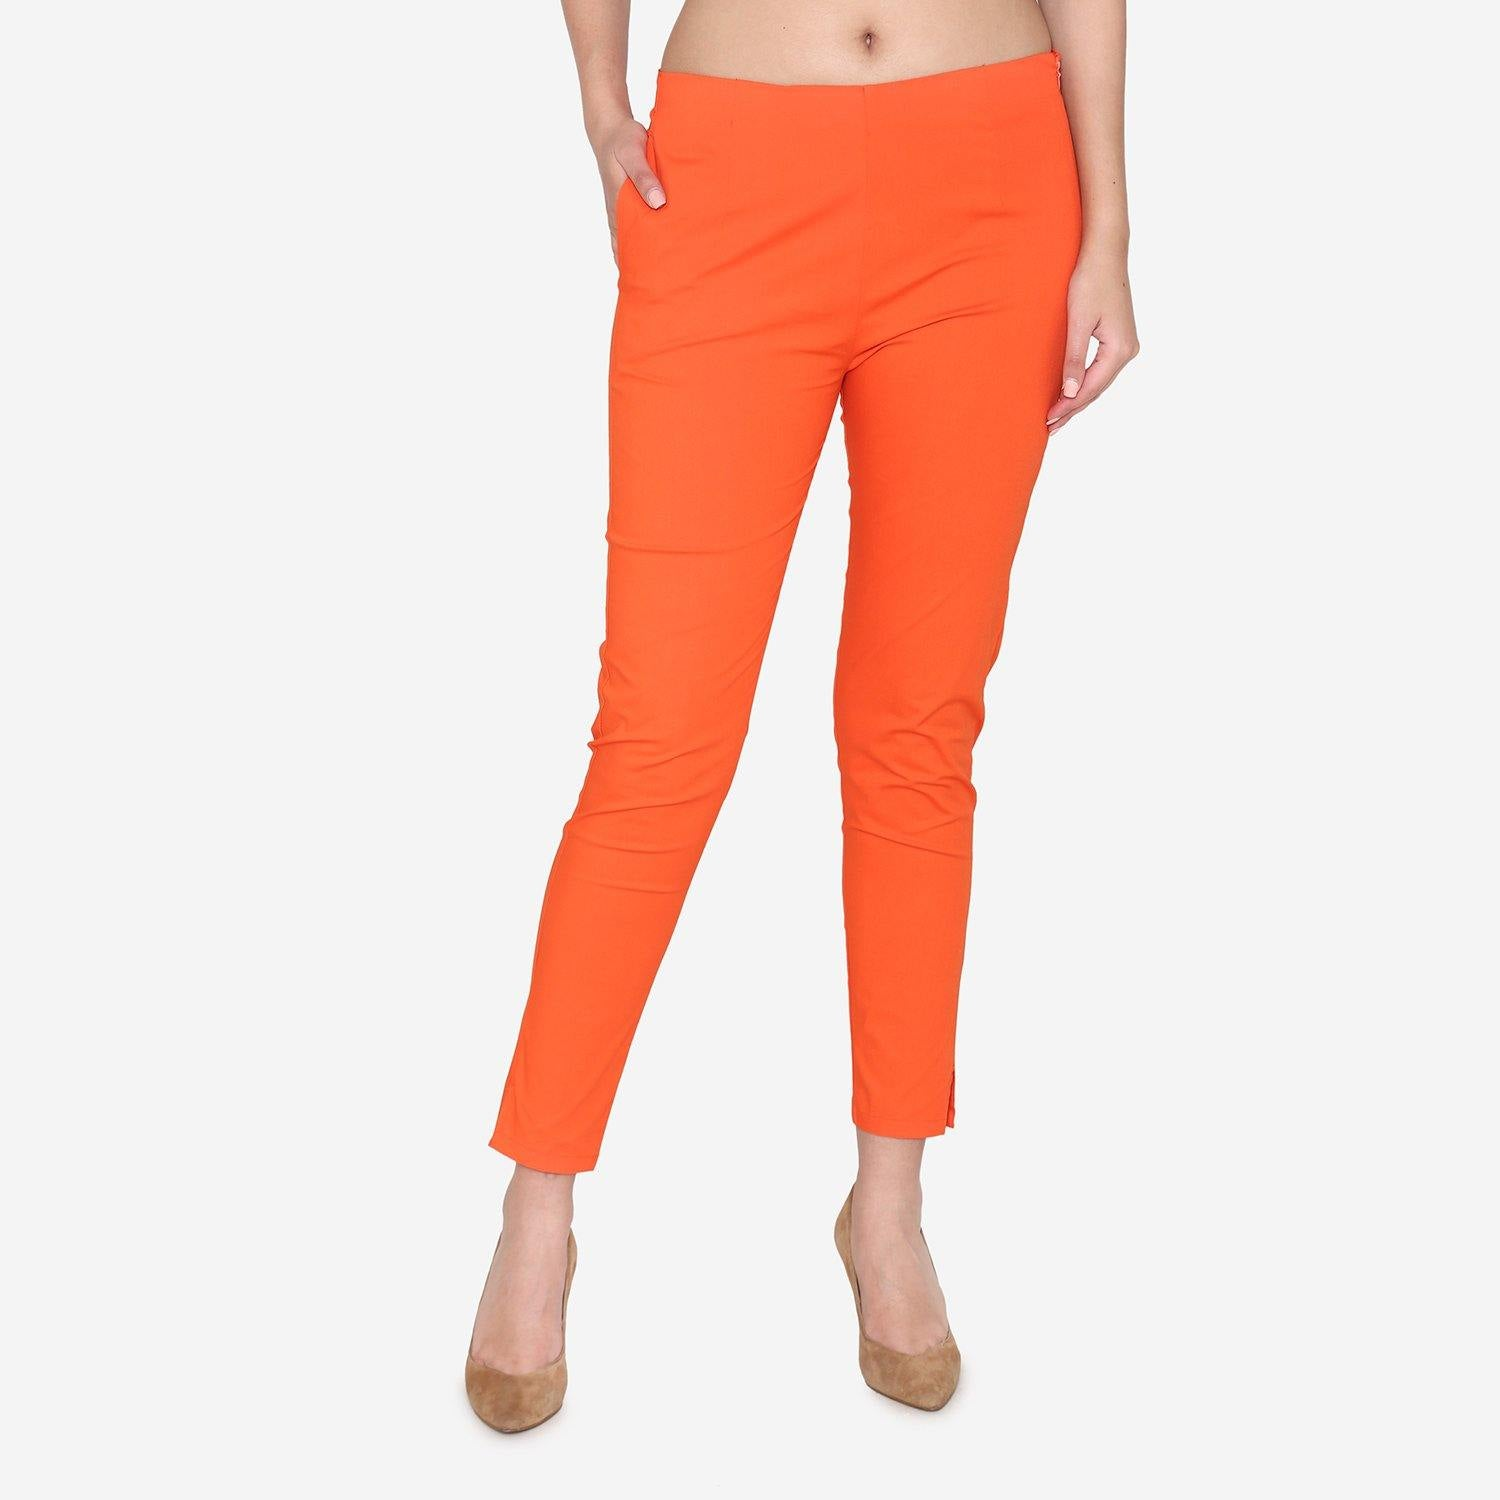 Vami Women's Cotton Formal Trousers- Fire